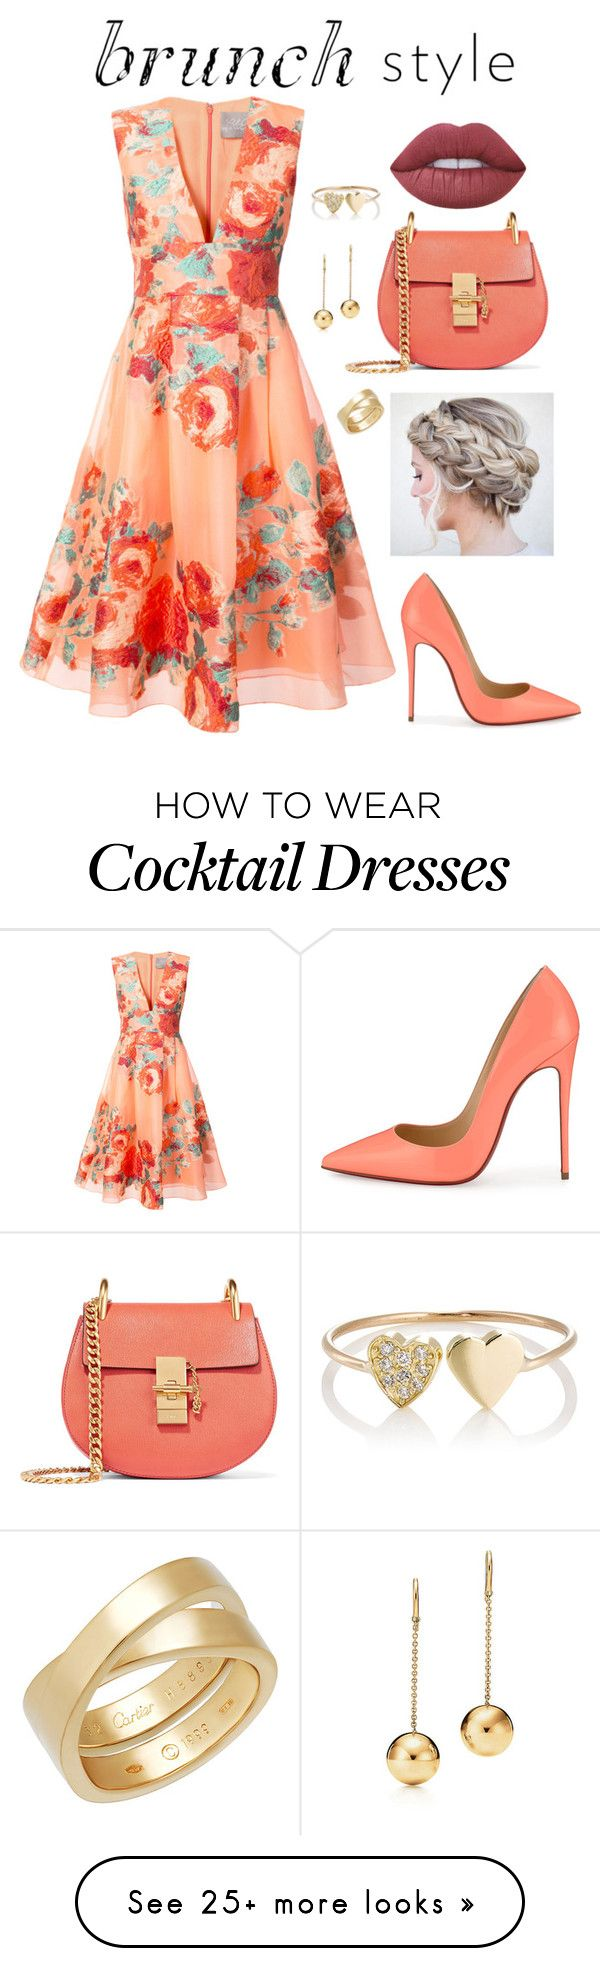 """Brunch Style"" by k-zaldi on Polyvore featuring Lela Rose, Christian Louboutin, Chloé, Lime Crime, Cartier and Jennifer Meyer Jewelry"